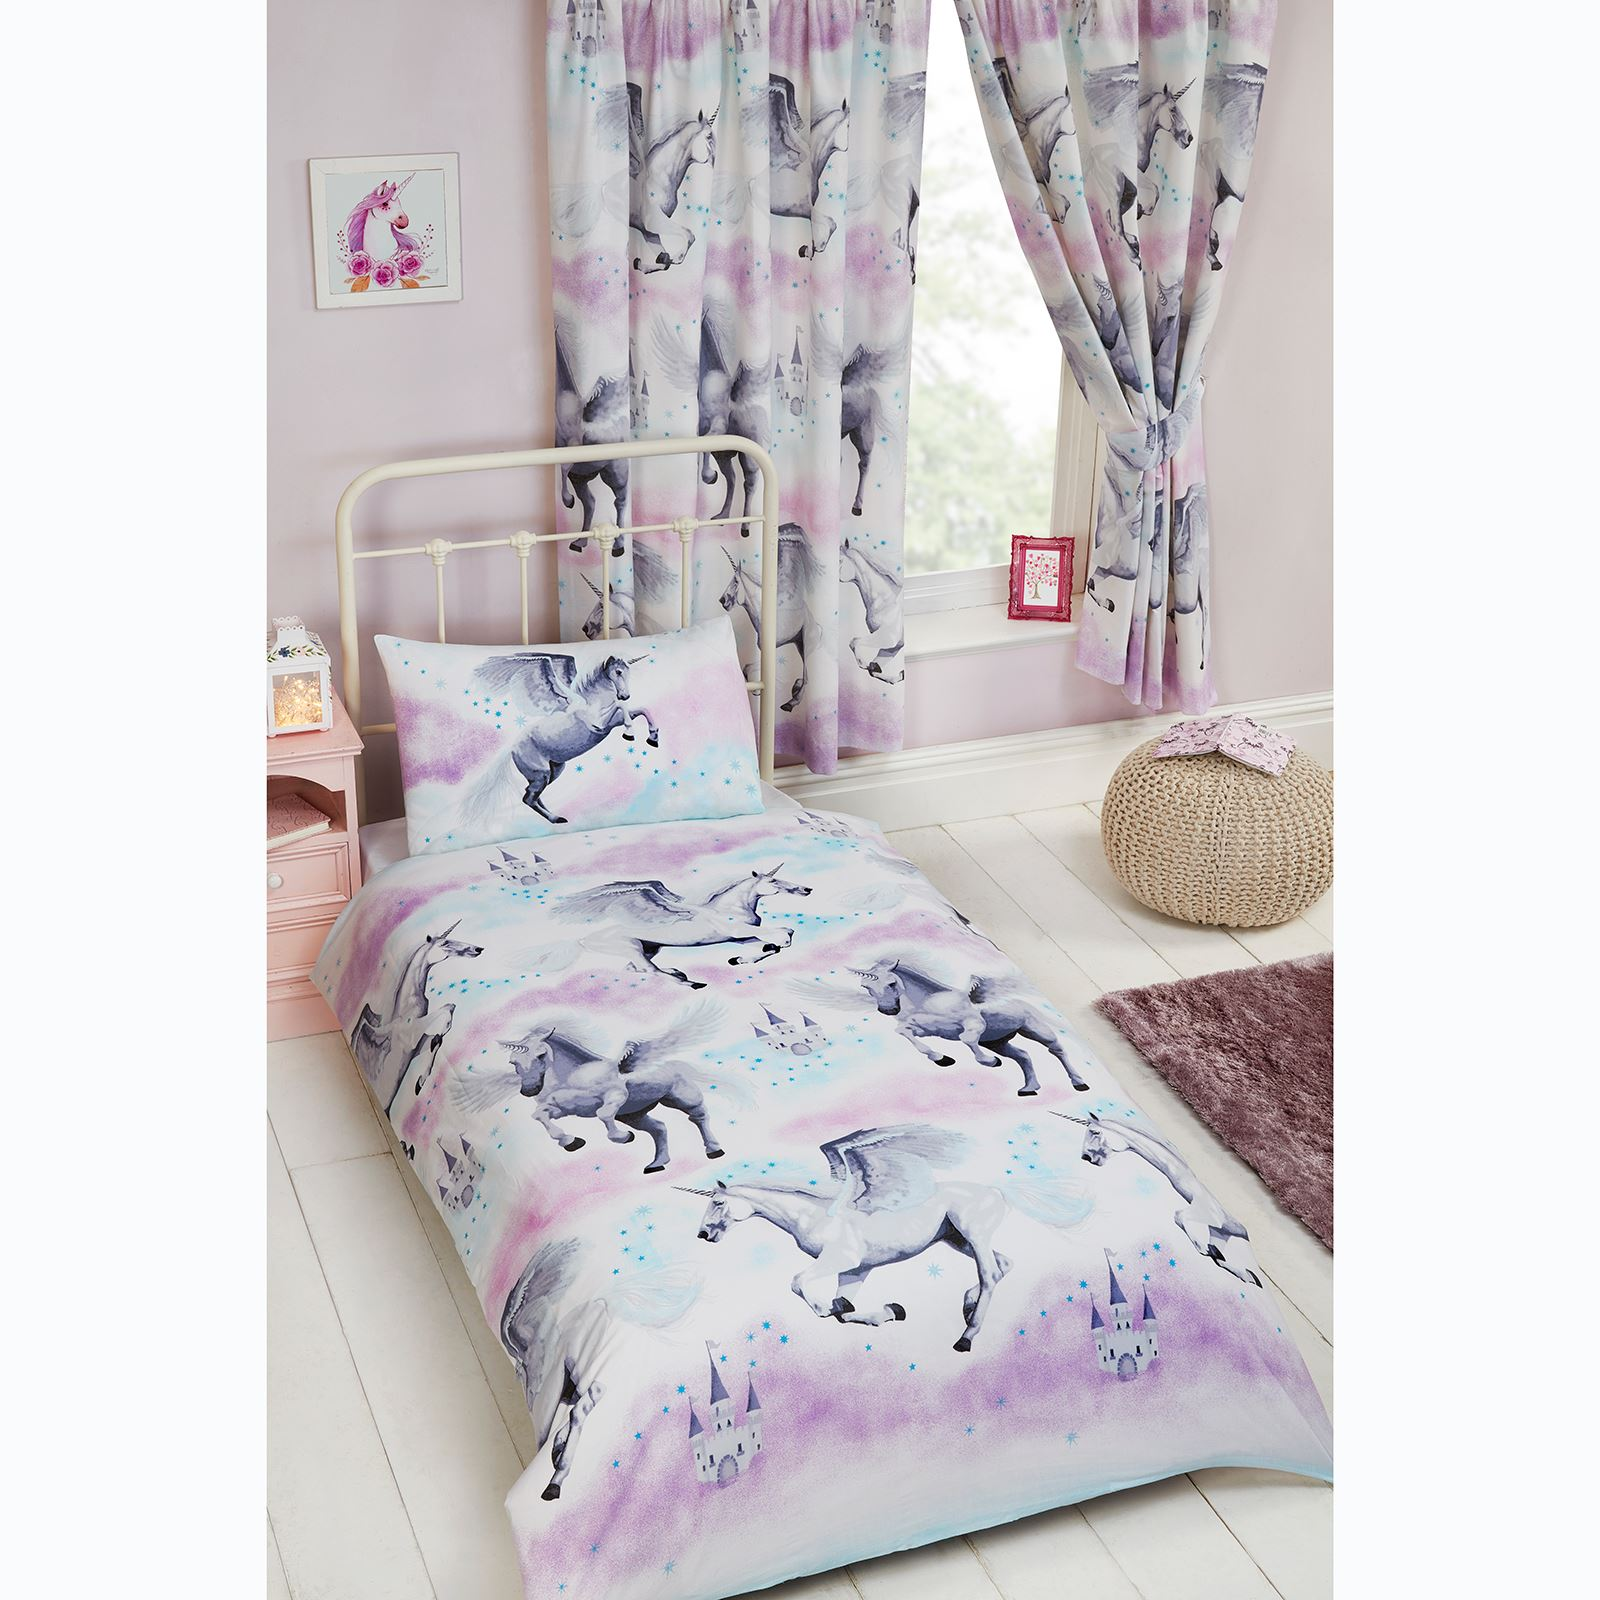 Stardust Unicorn Purple Teal Curtains Amp Duvet Cover Set